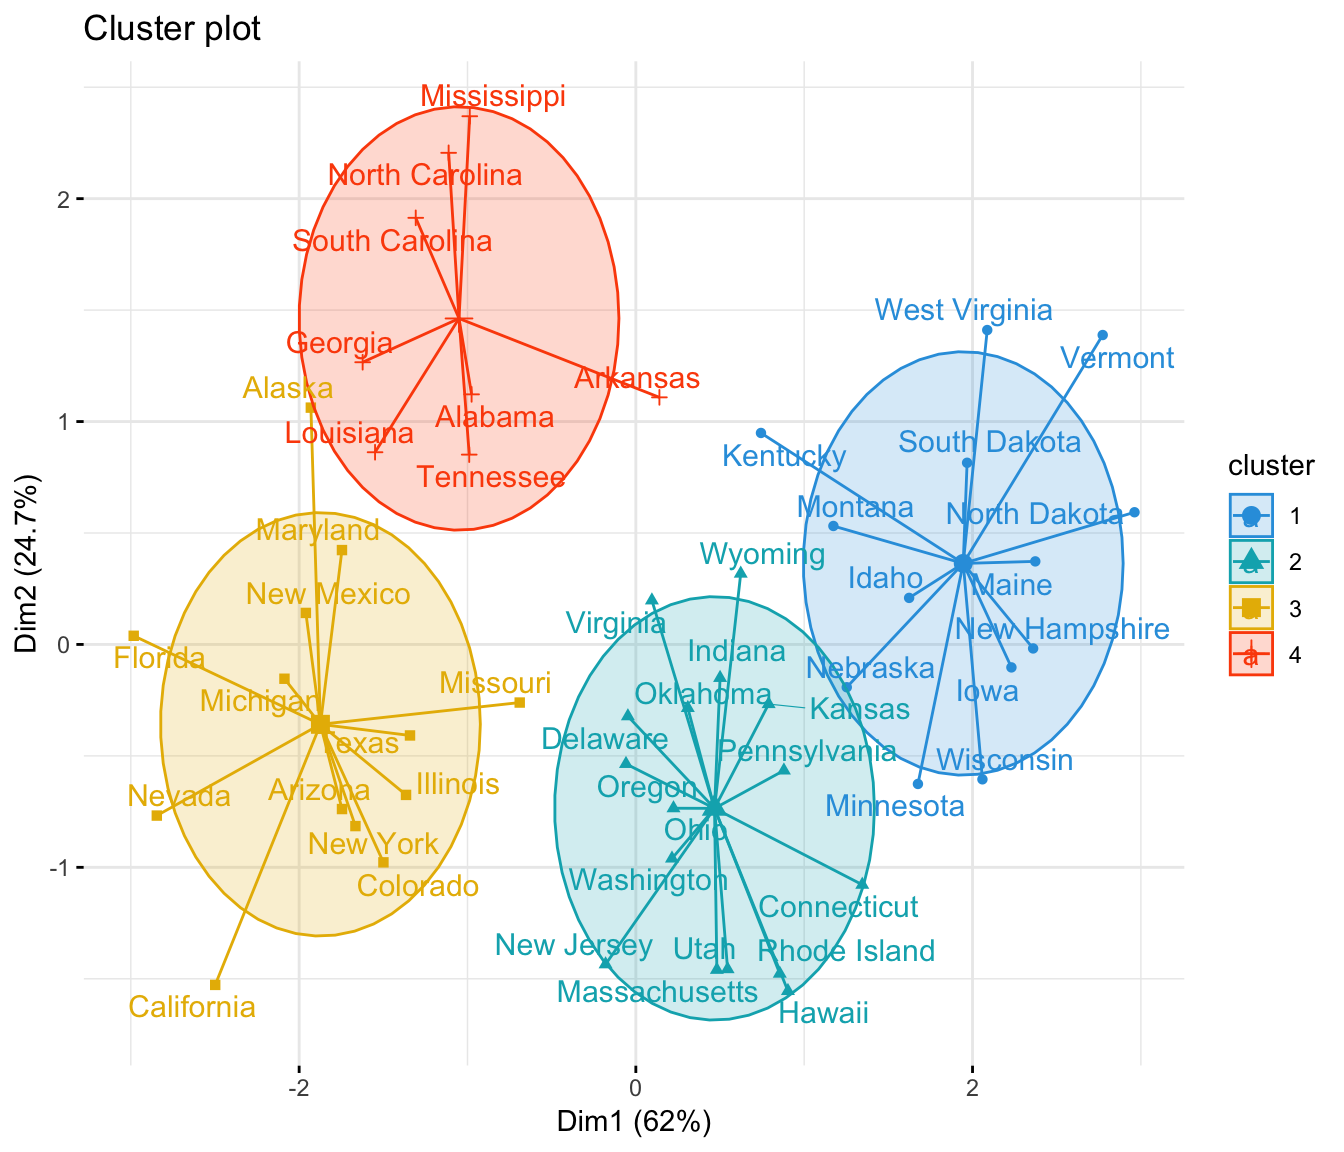 K-Means Clustering in R: Algorithm and Practical Examples - Datanovia